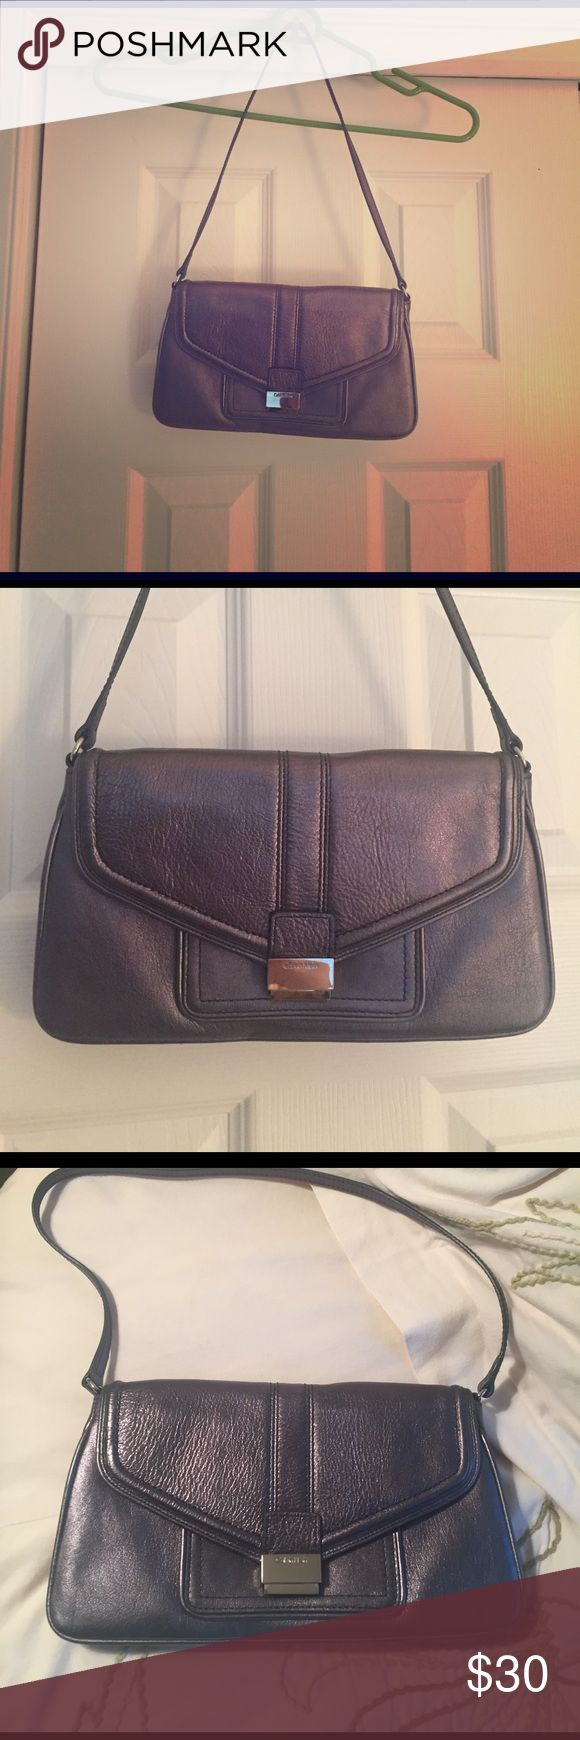 Calvin Klein Bag Metallic silver shoulder bag in excellent condition! Bag worn few times and comes with matching mirror inside. Calvin Klein Bags Shoulder Bags